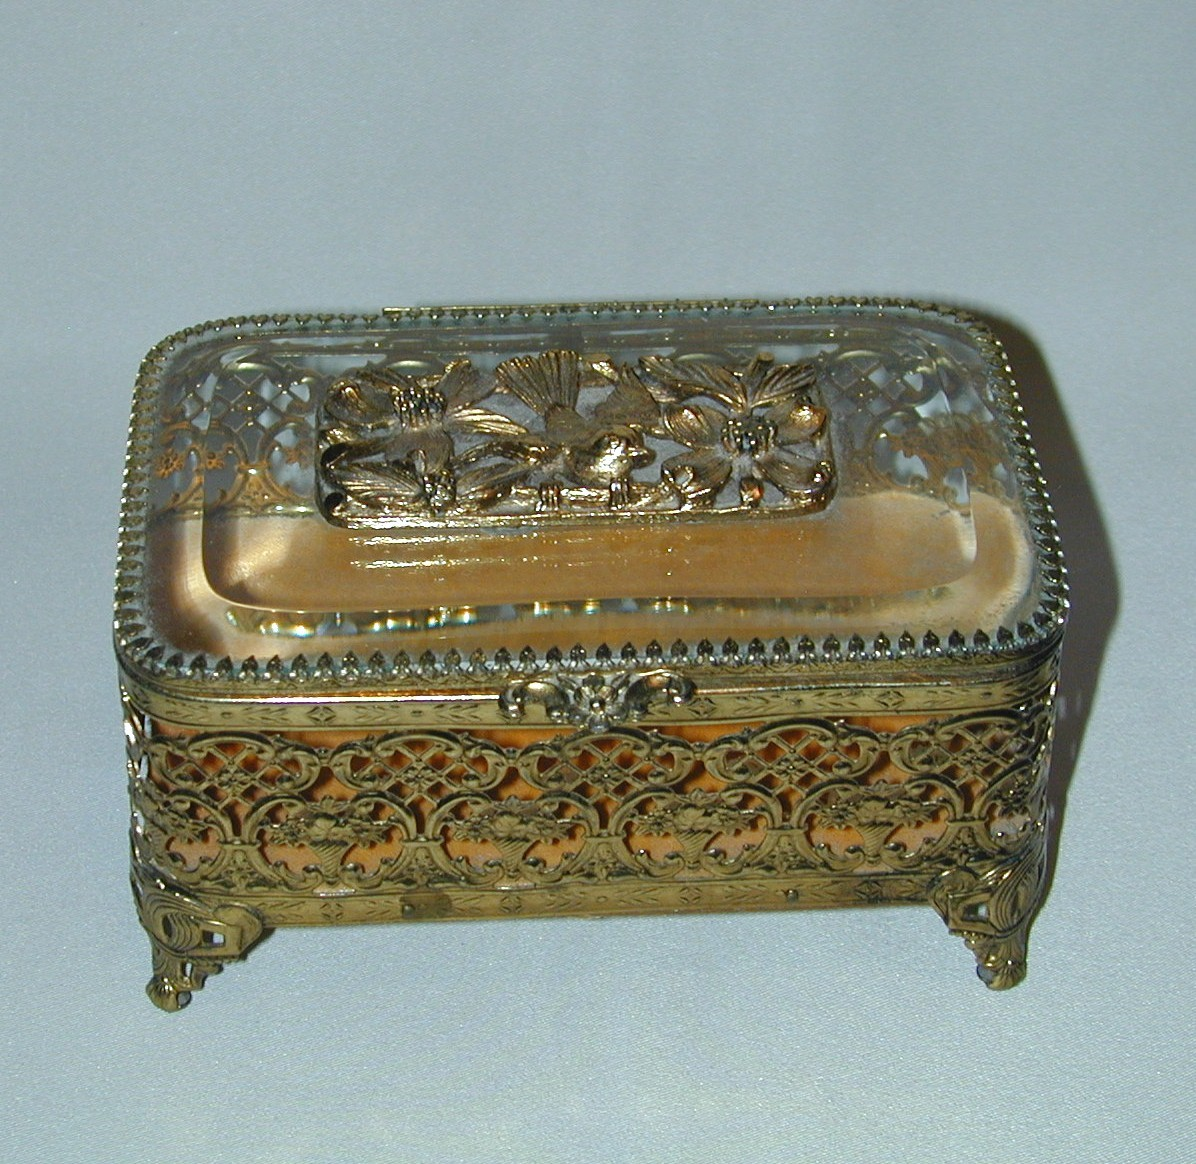 Marvelous Vintage Filigree & Glass Jewel or Trinket Box With Bird & Flowers